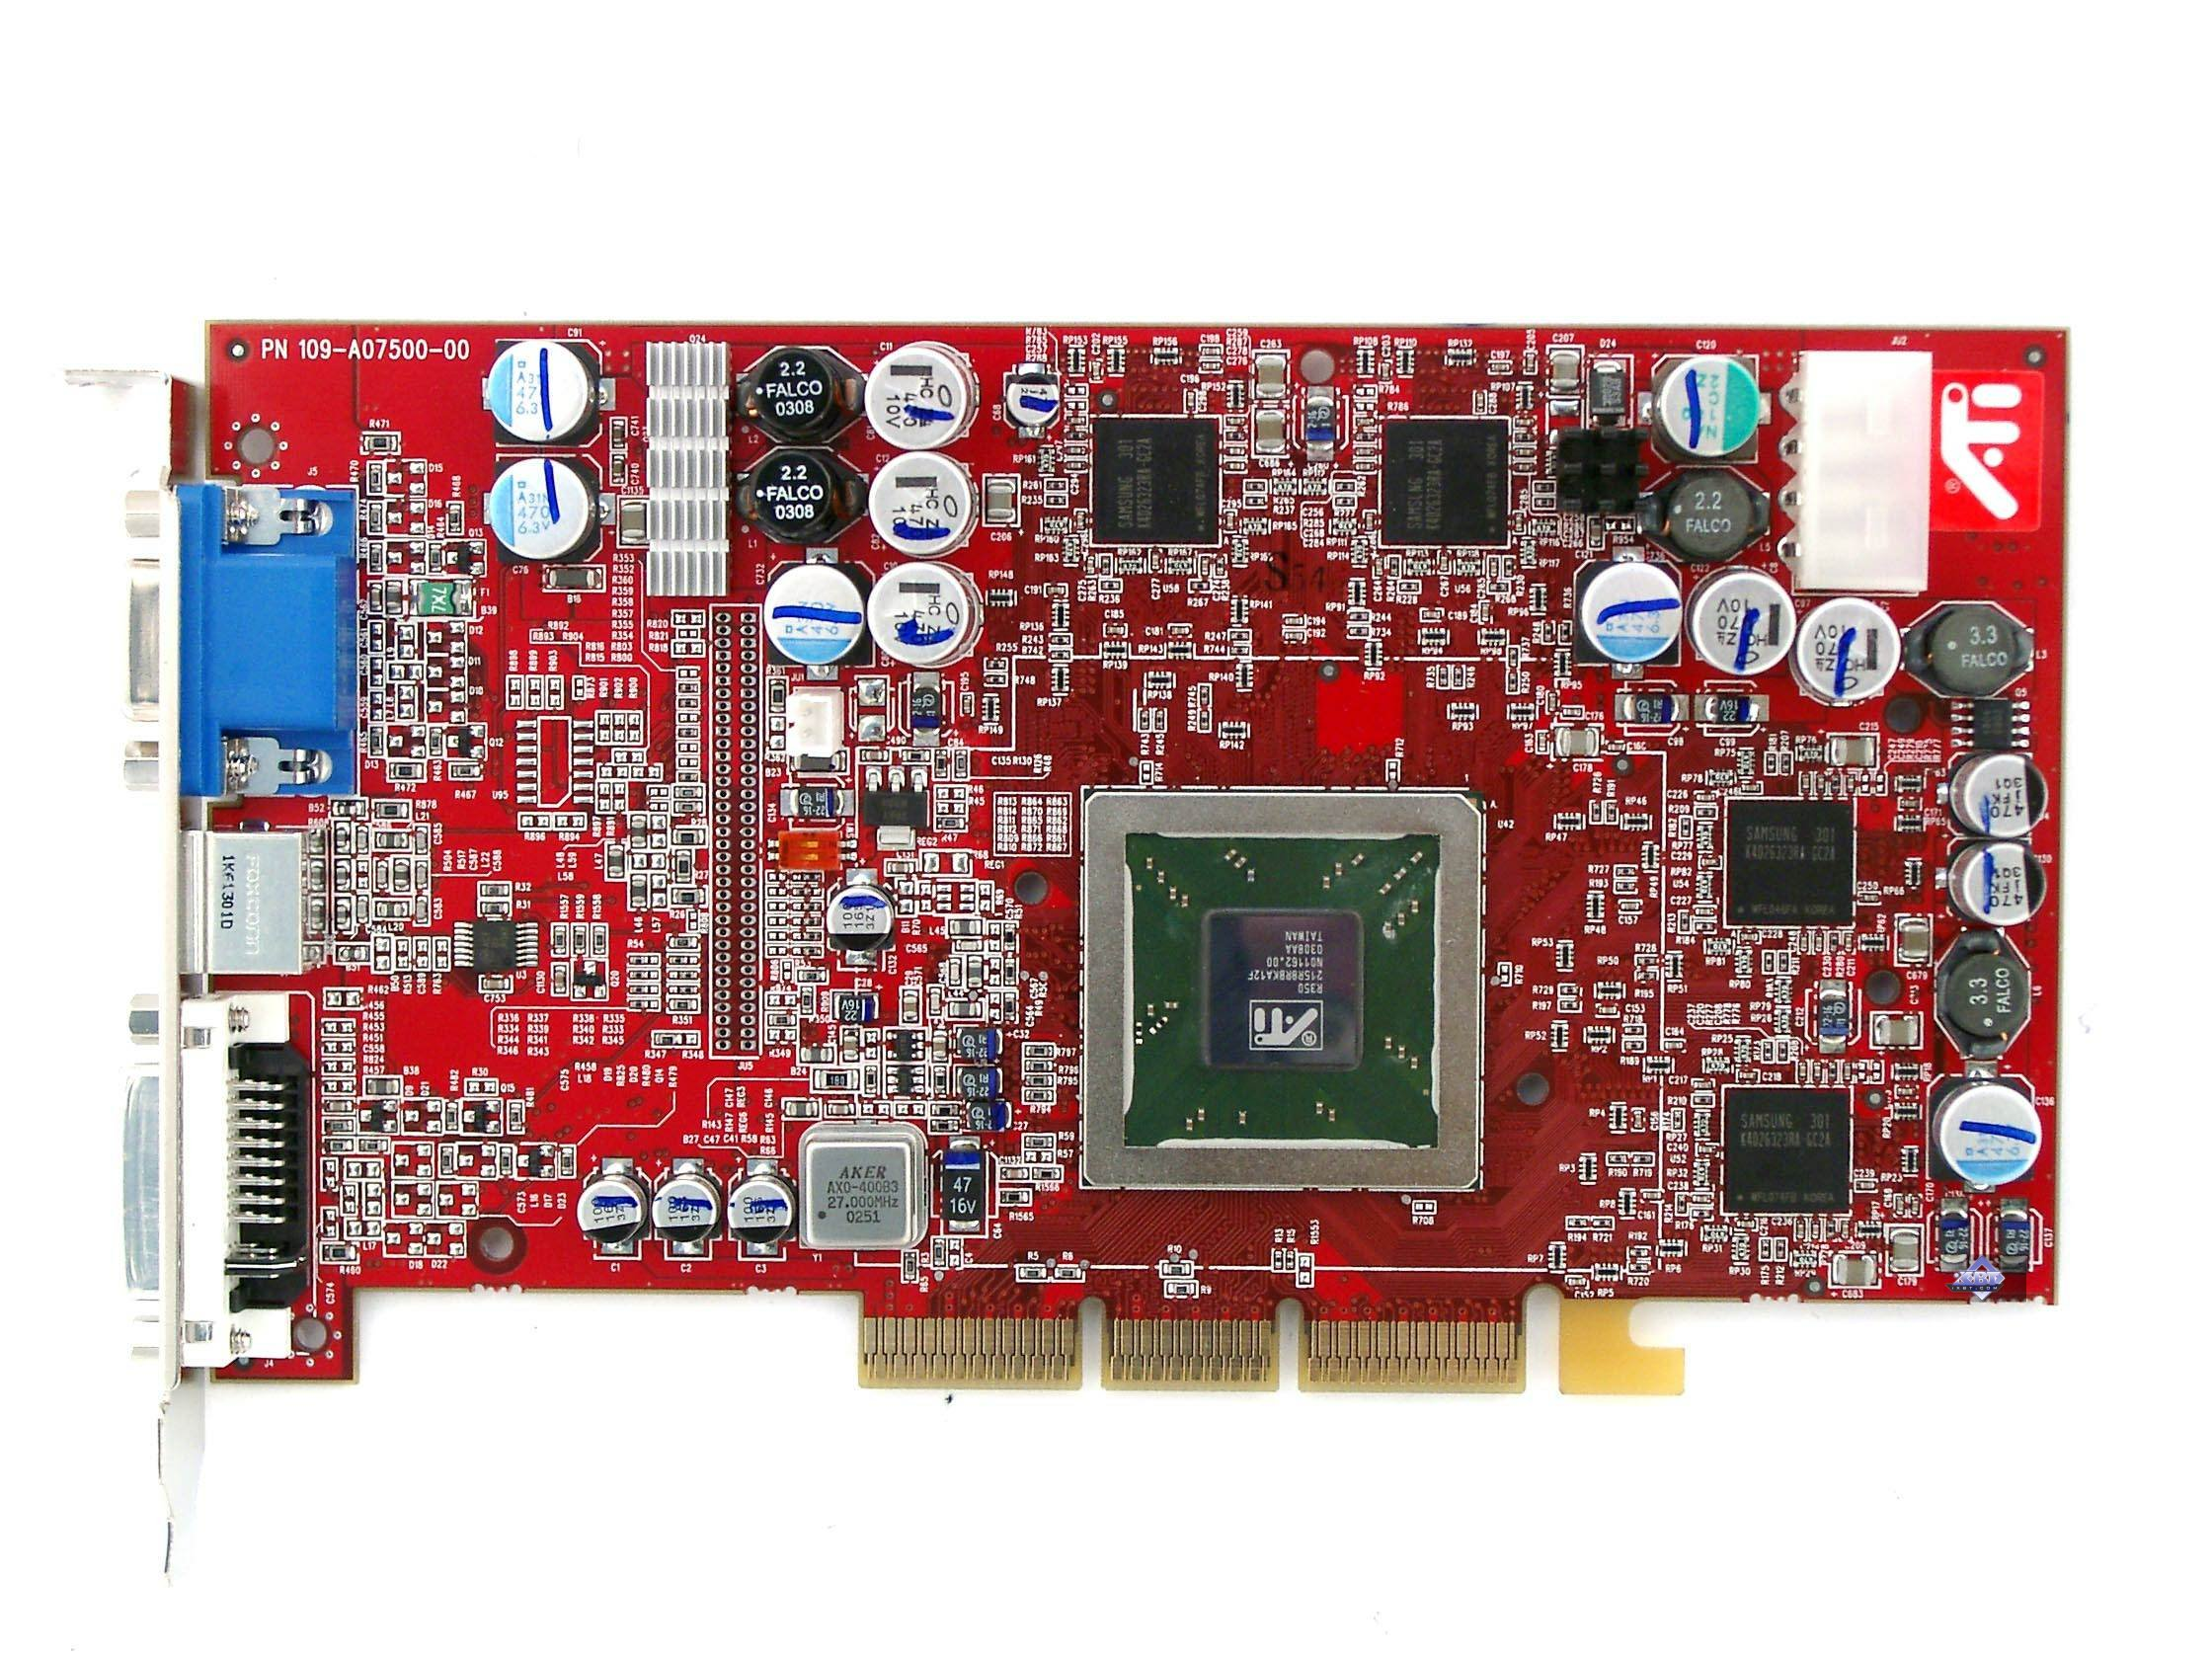 ATI RADEON RV360 WINDOWS 8 X64 DRIVER